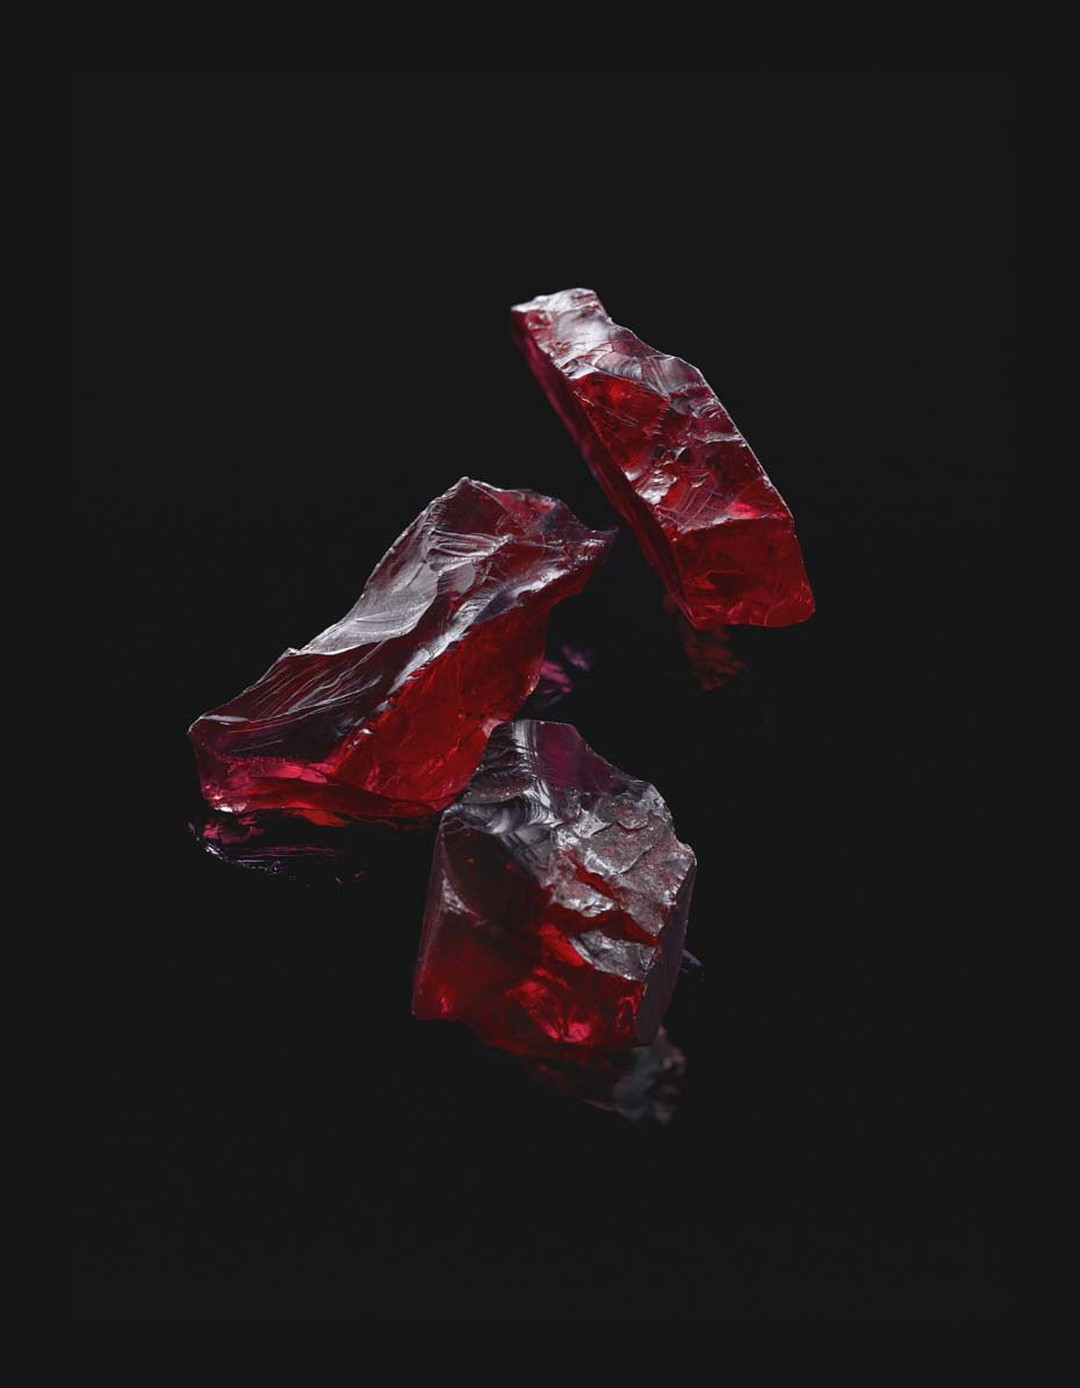 Gemfields production of African rubies in its Mozambique mine has enabled production of some stunning ruby jewellery, when the rough-cut gemstones, like these, are polished into beautiful jewels.